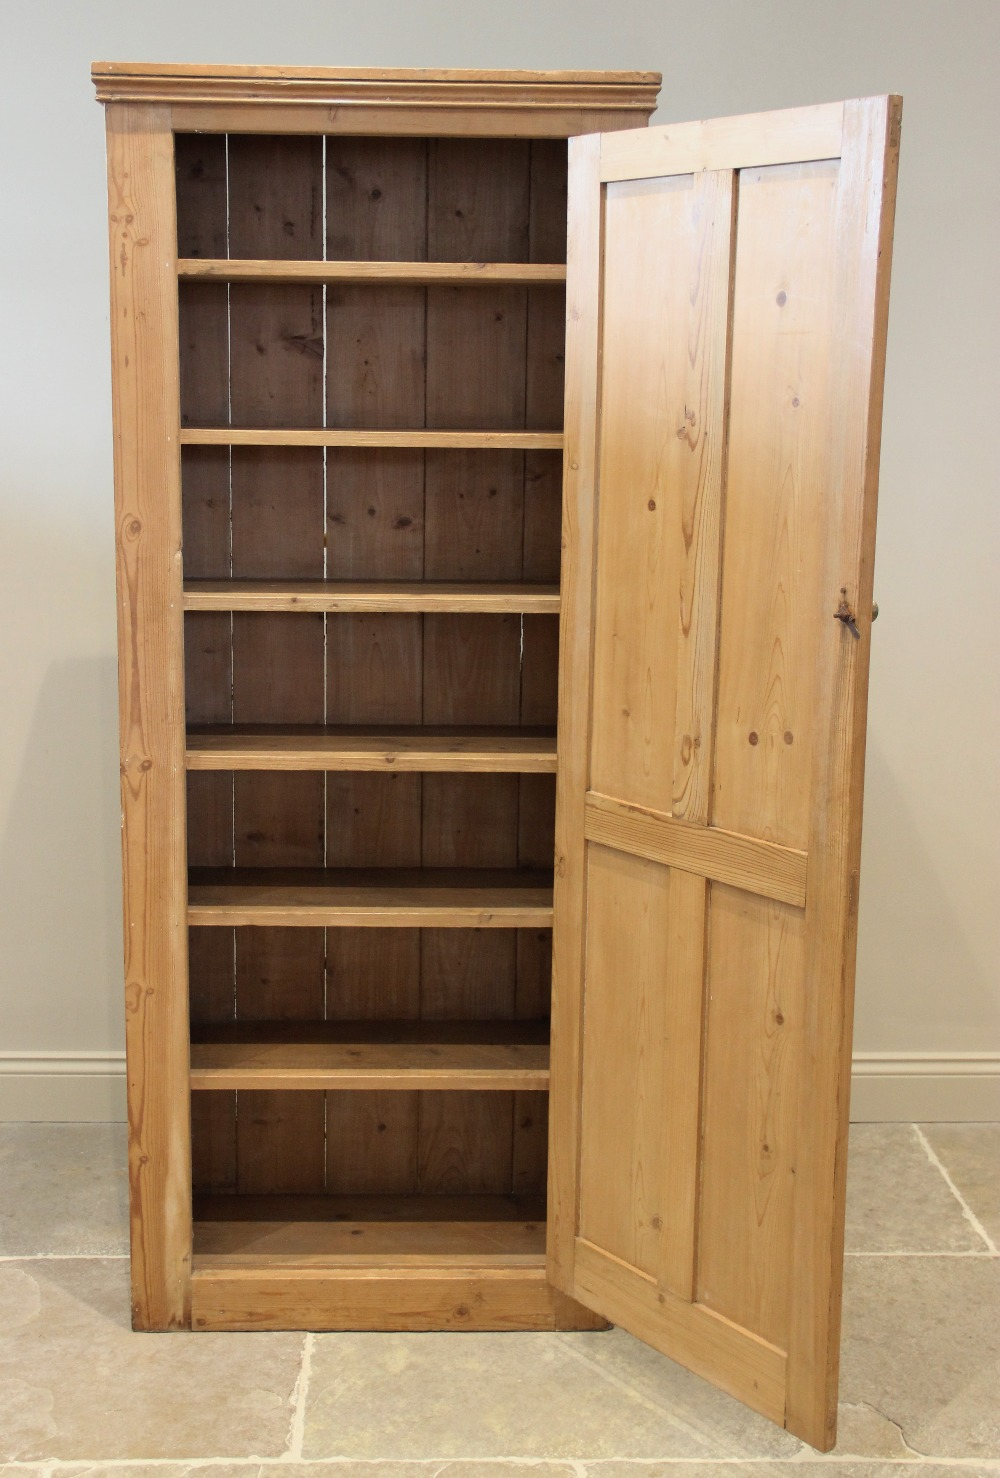 A Victorian pine kitchen cupboard, the single quatre panelled door opening to six fixed shelves, - Image 2 of 2